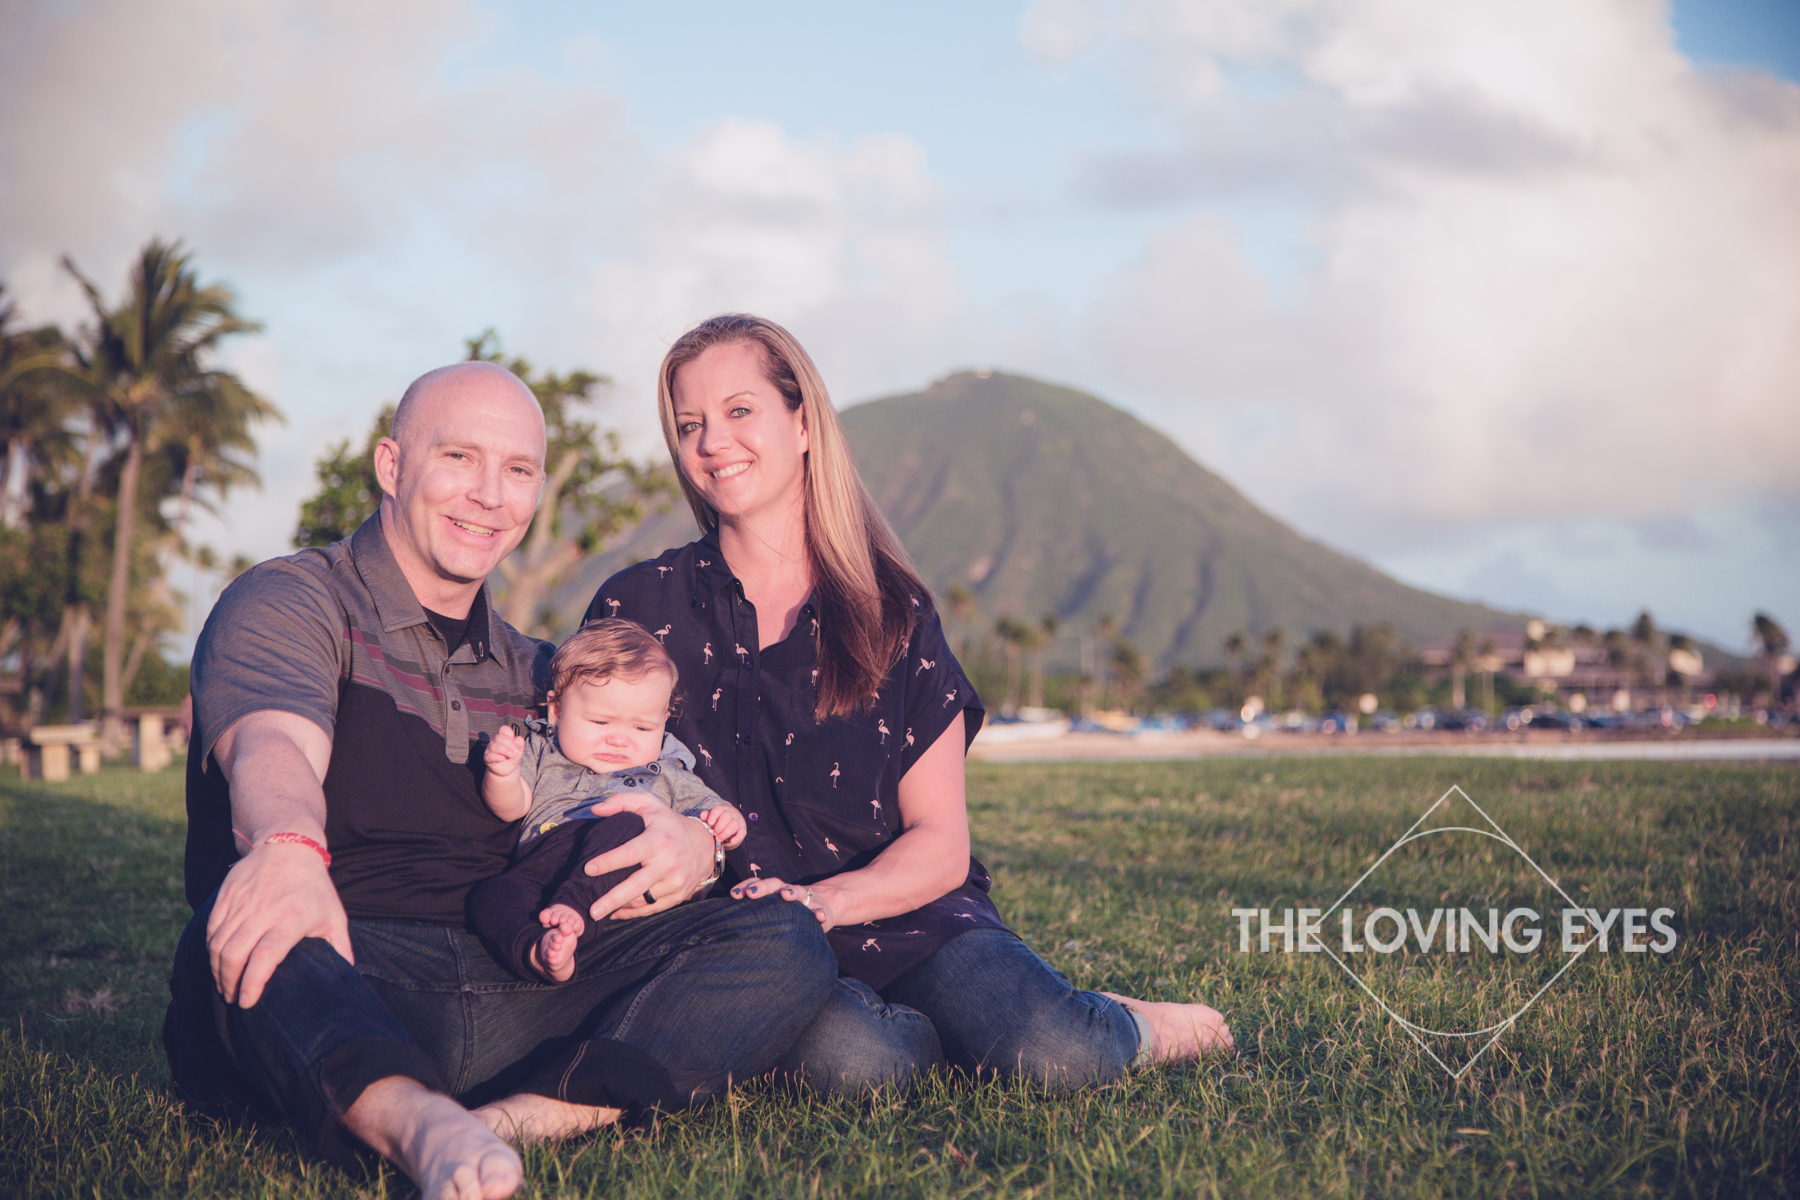 Family portrait during vacation in the park in Kuliouou Hawaii